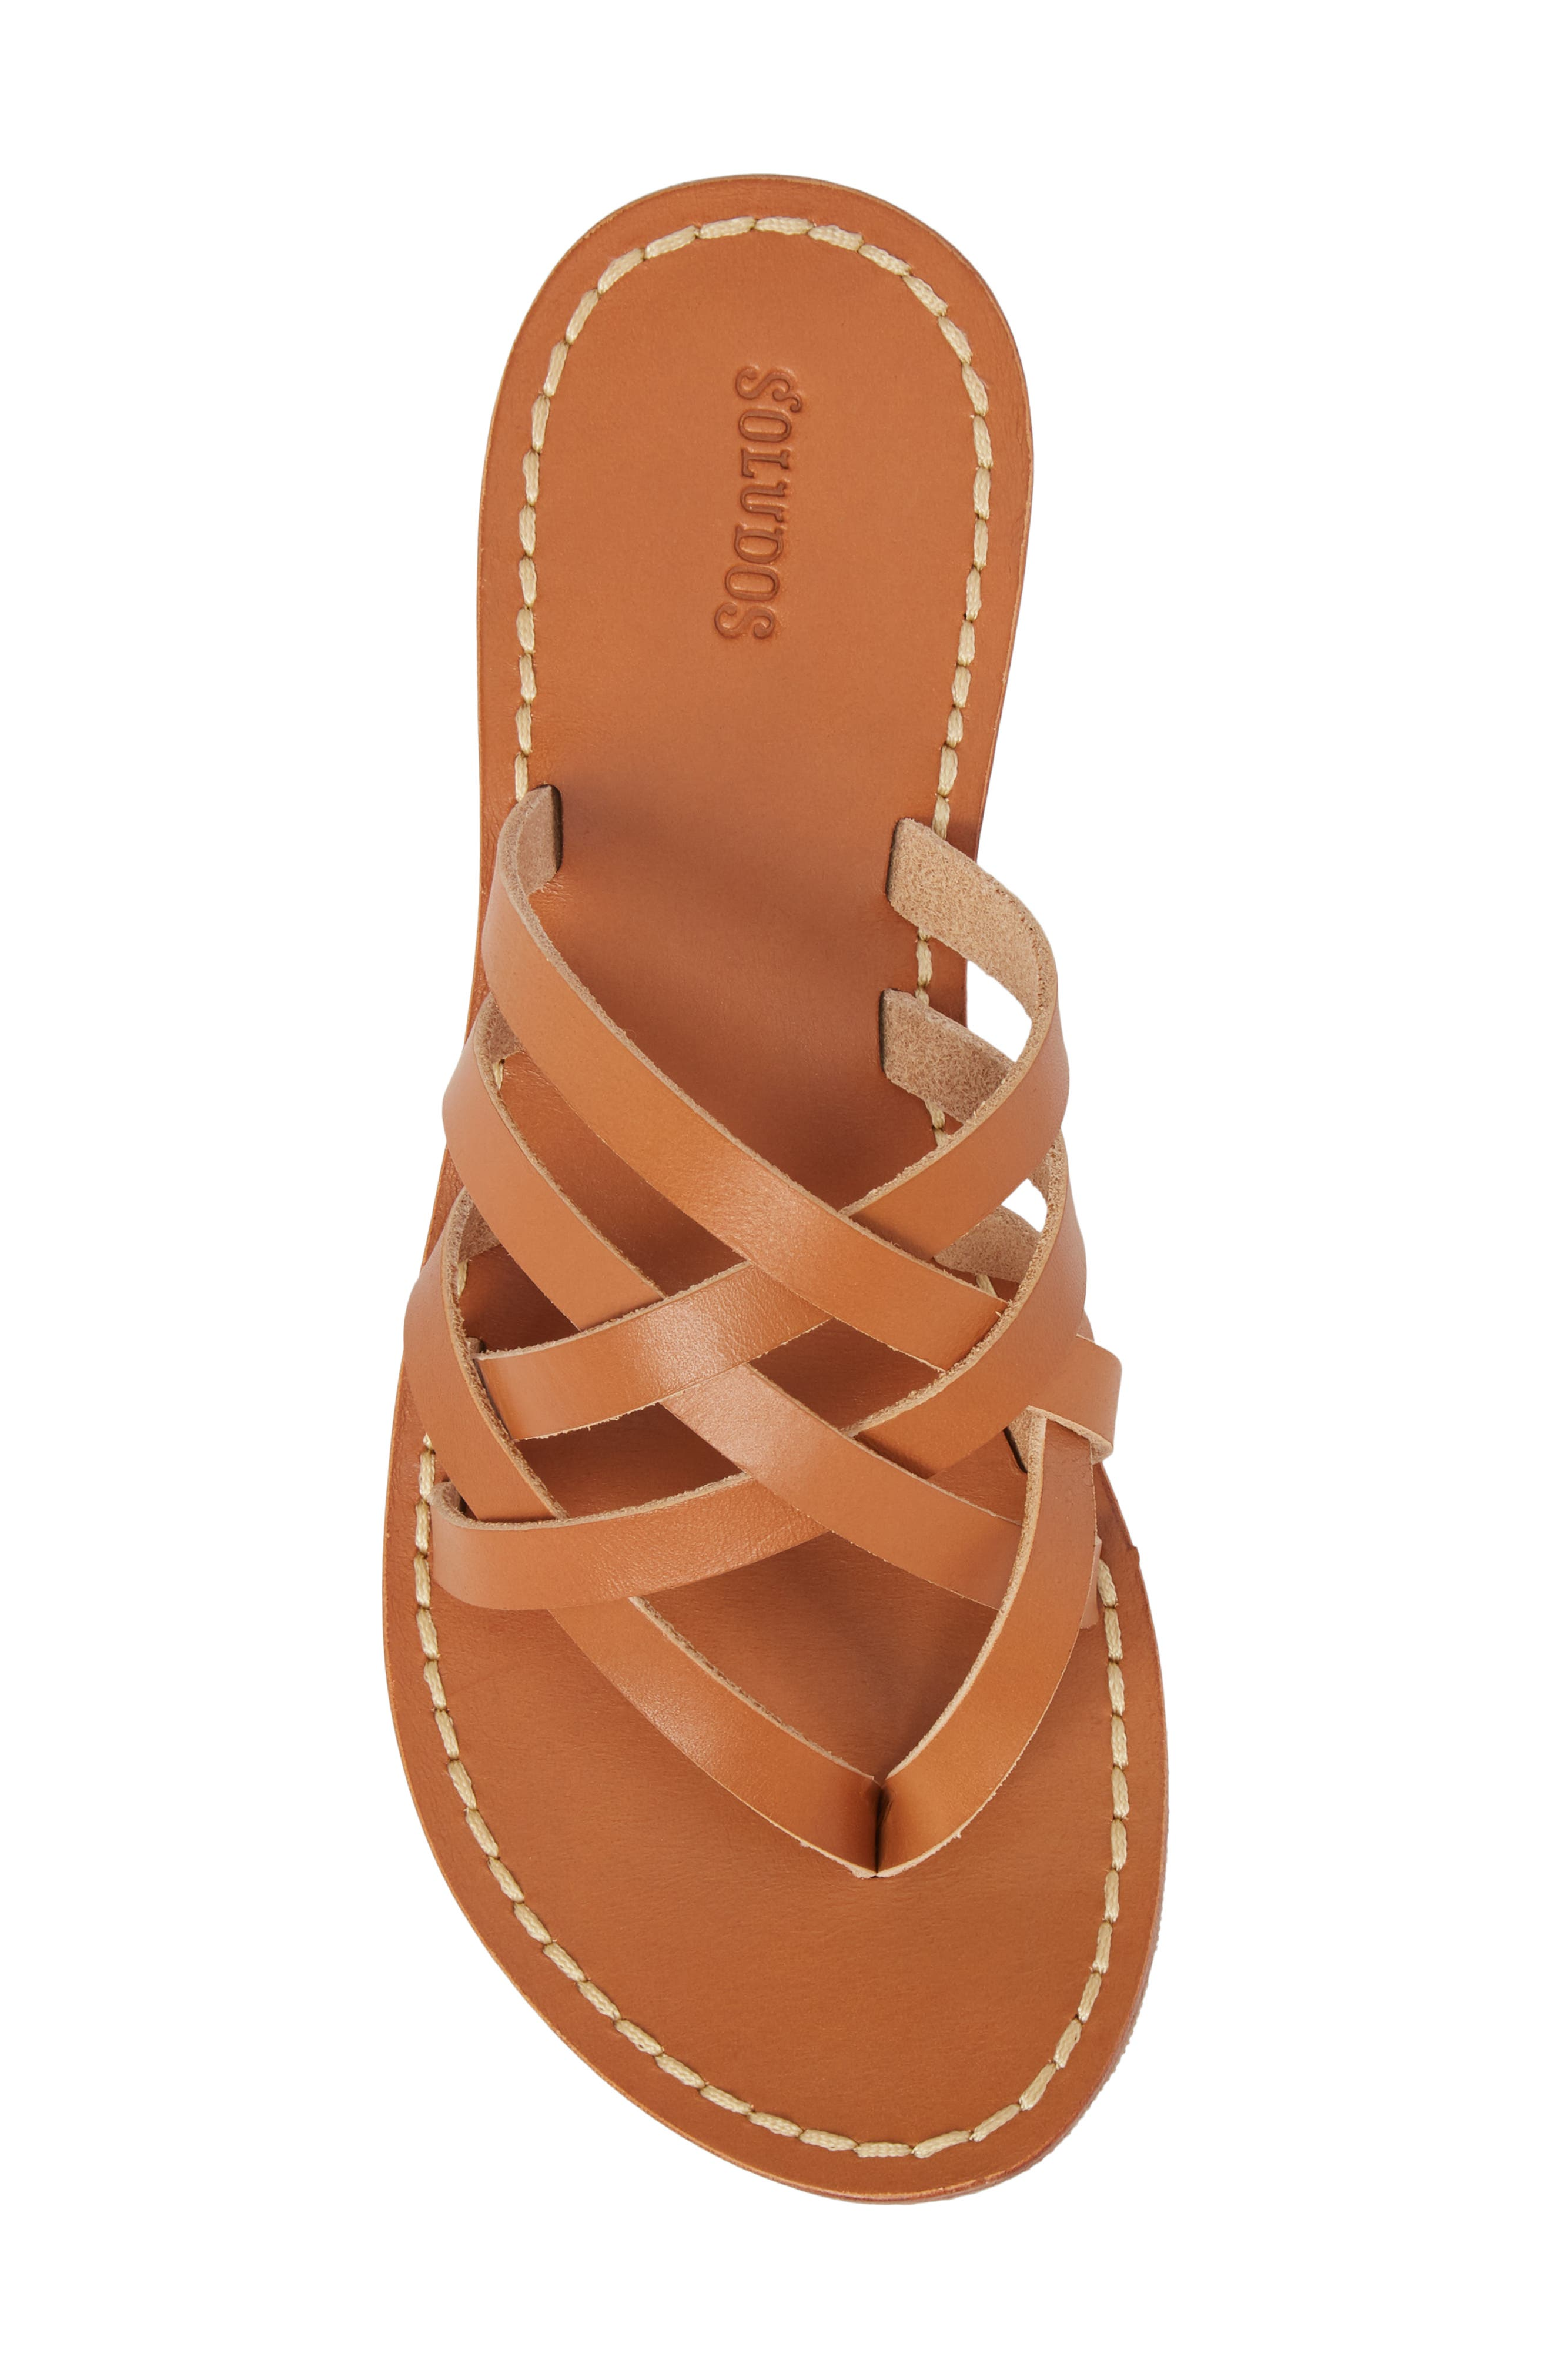 Strappy Sandal,                             Alternate thumbnail 5, color,                             Natural Leather